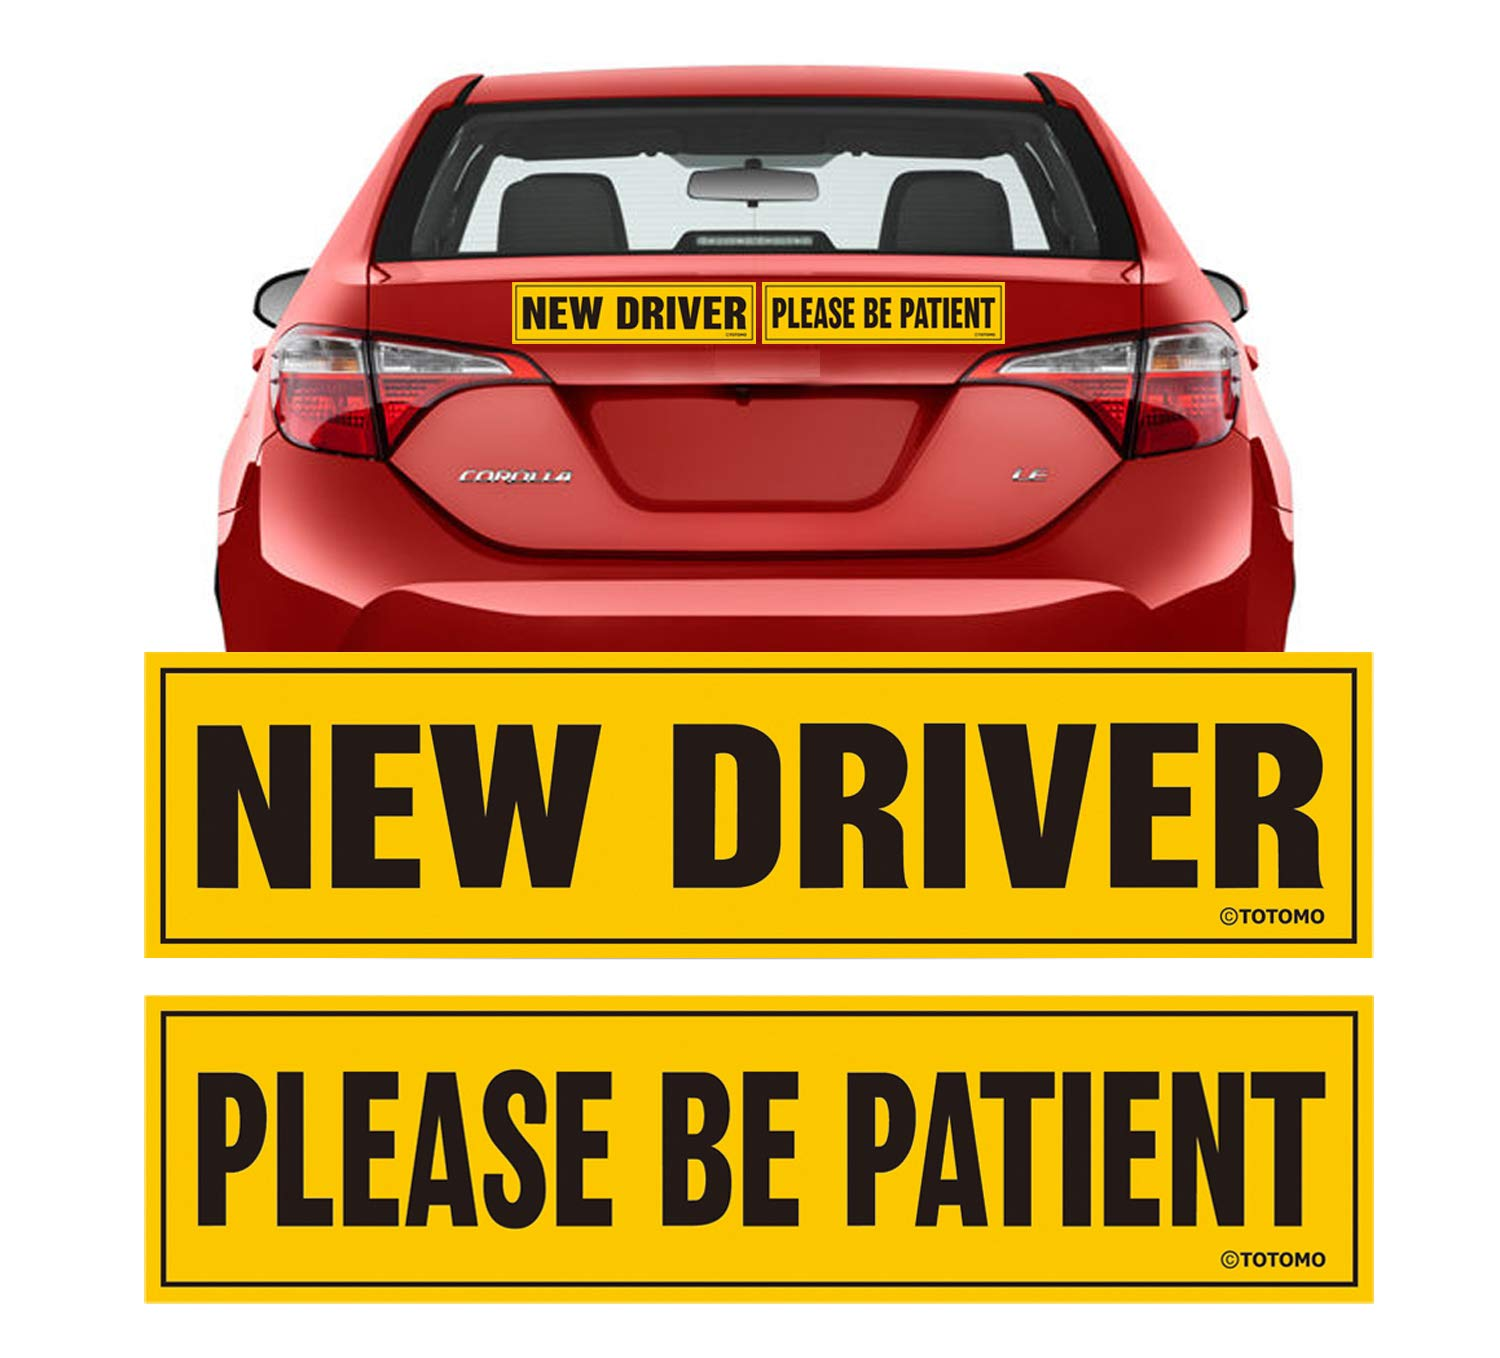 568b6d39 29 Best Gifts for New Drivers - Car Accessories & Other Cool Stuff ...